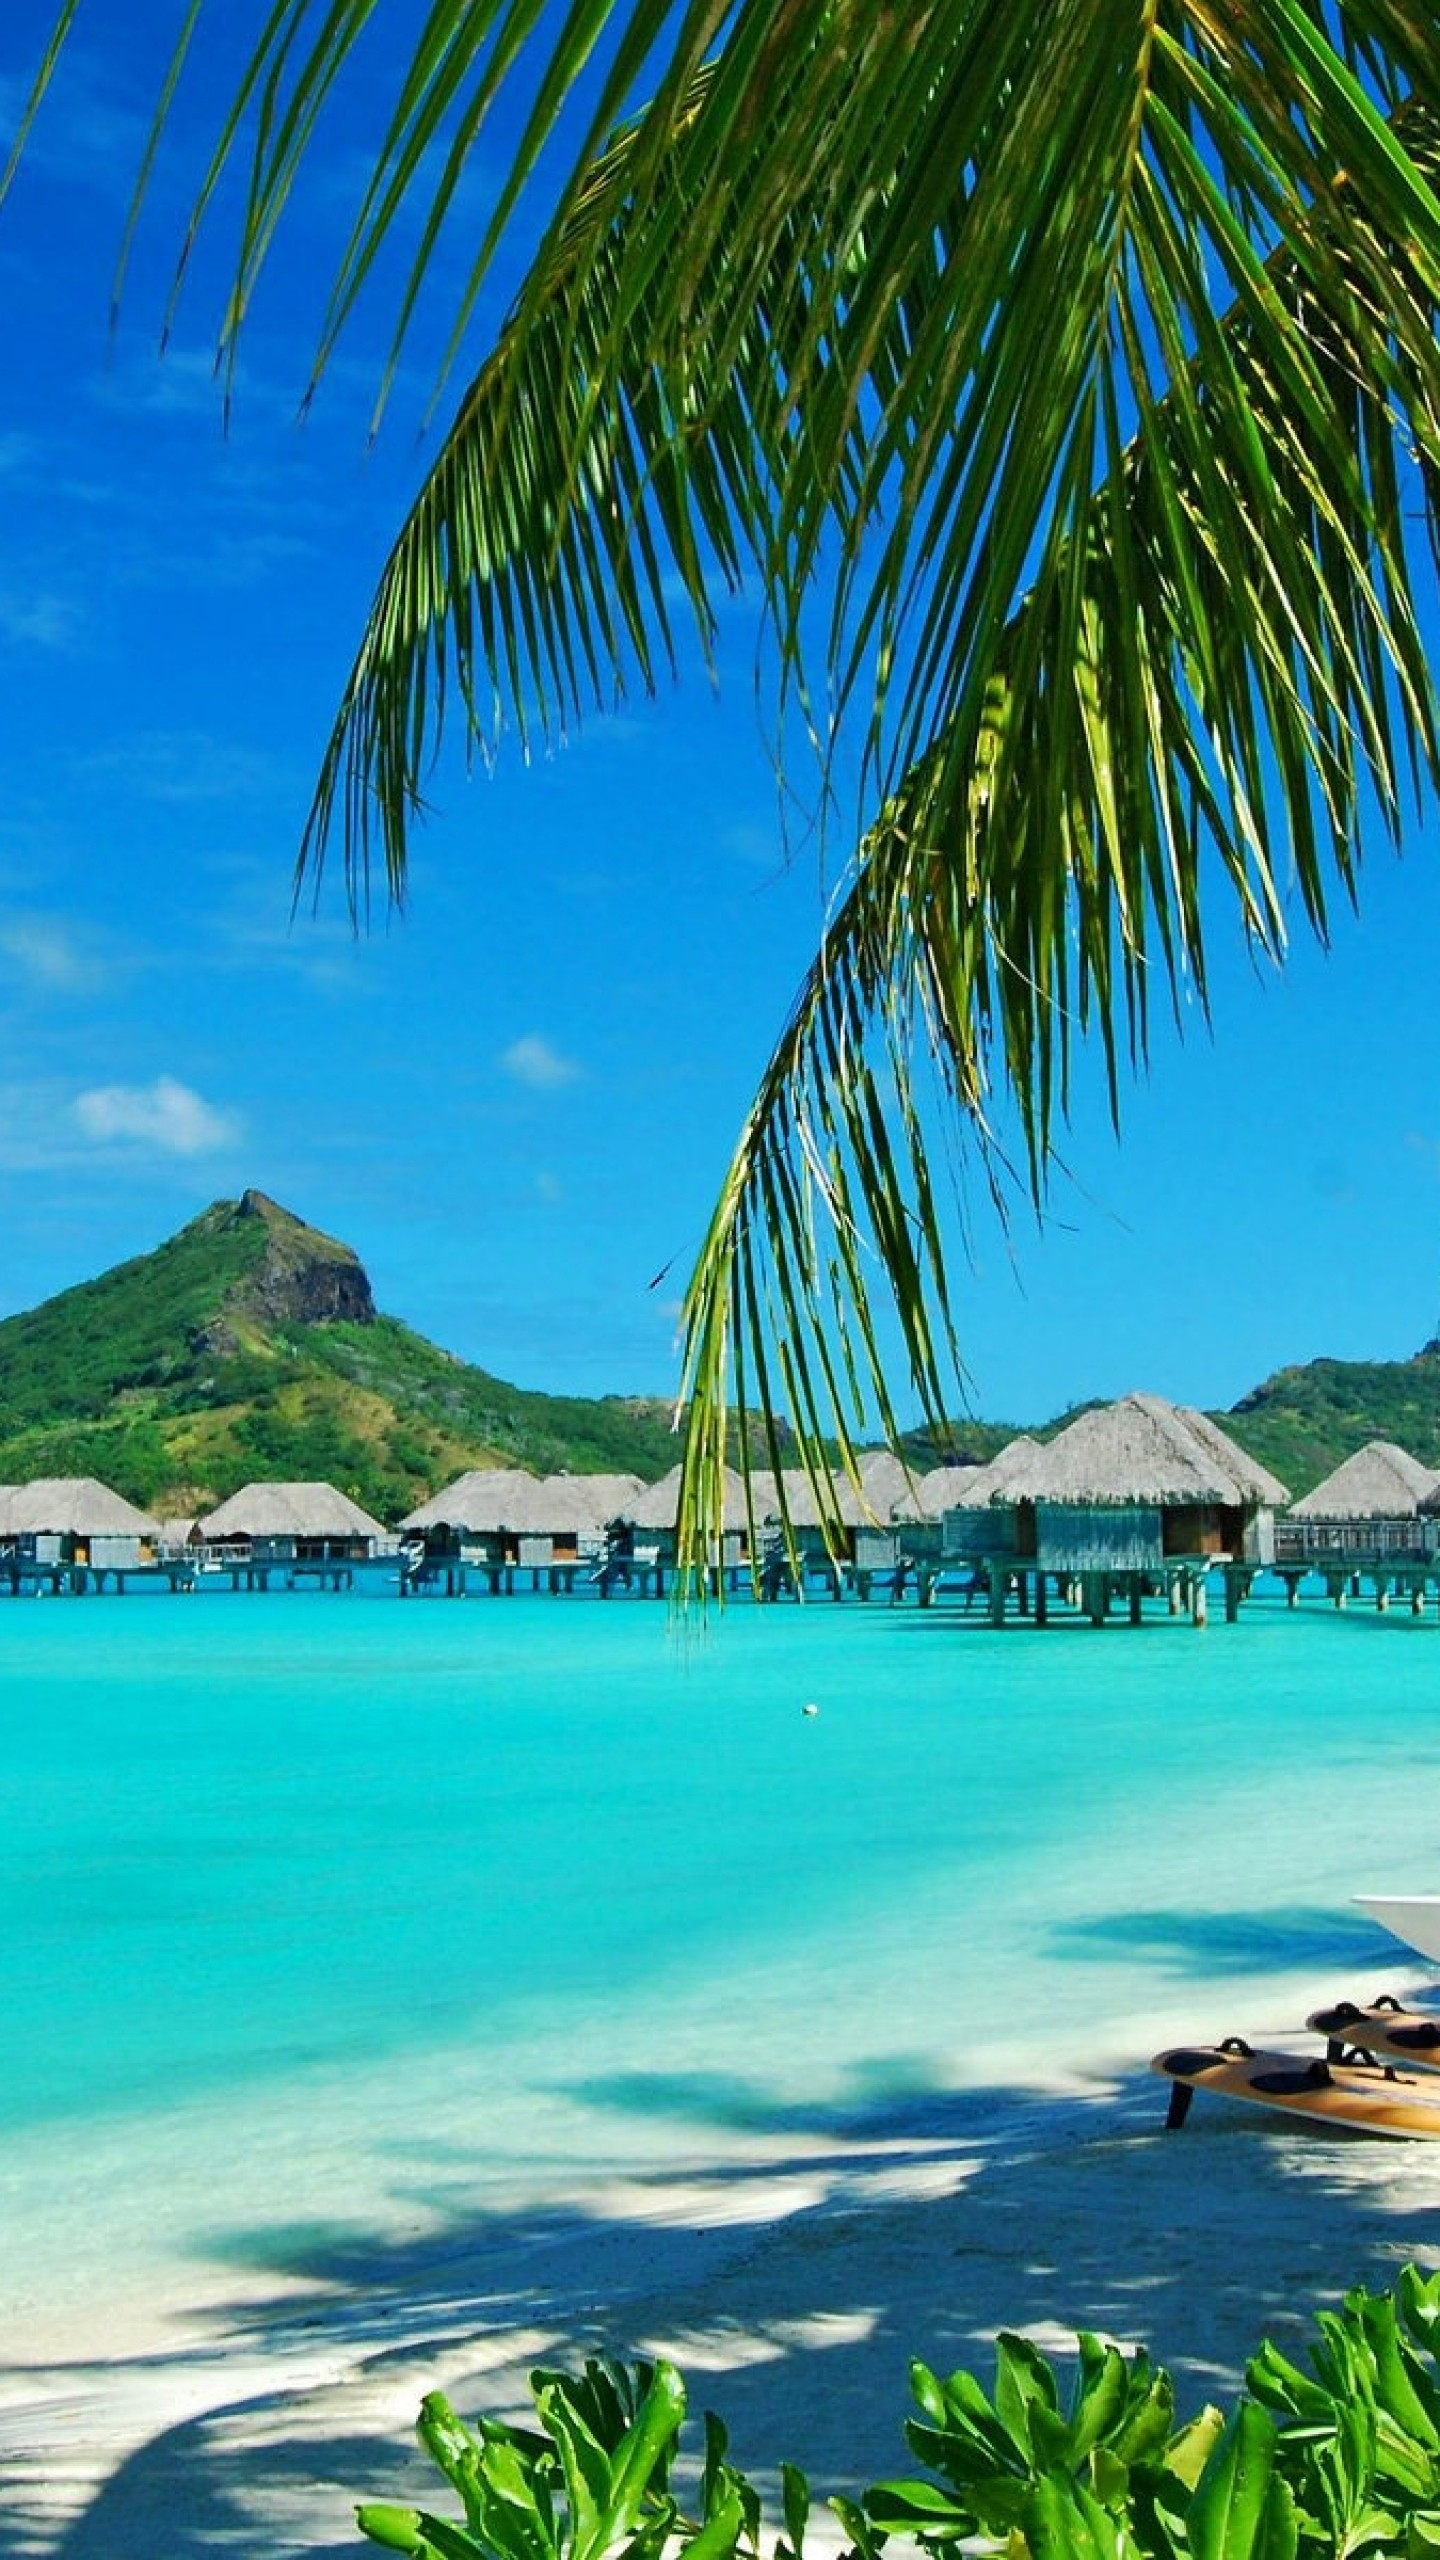 1440x2560 Preview wallpaper hawaii, coast, resort, rest, palm trees, lagoon, blue